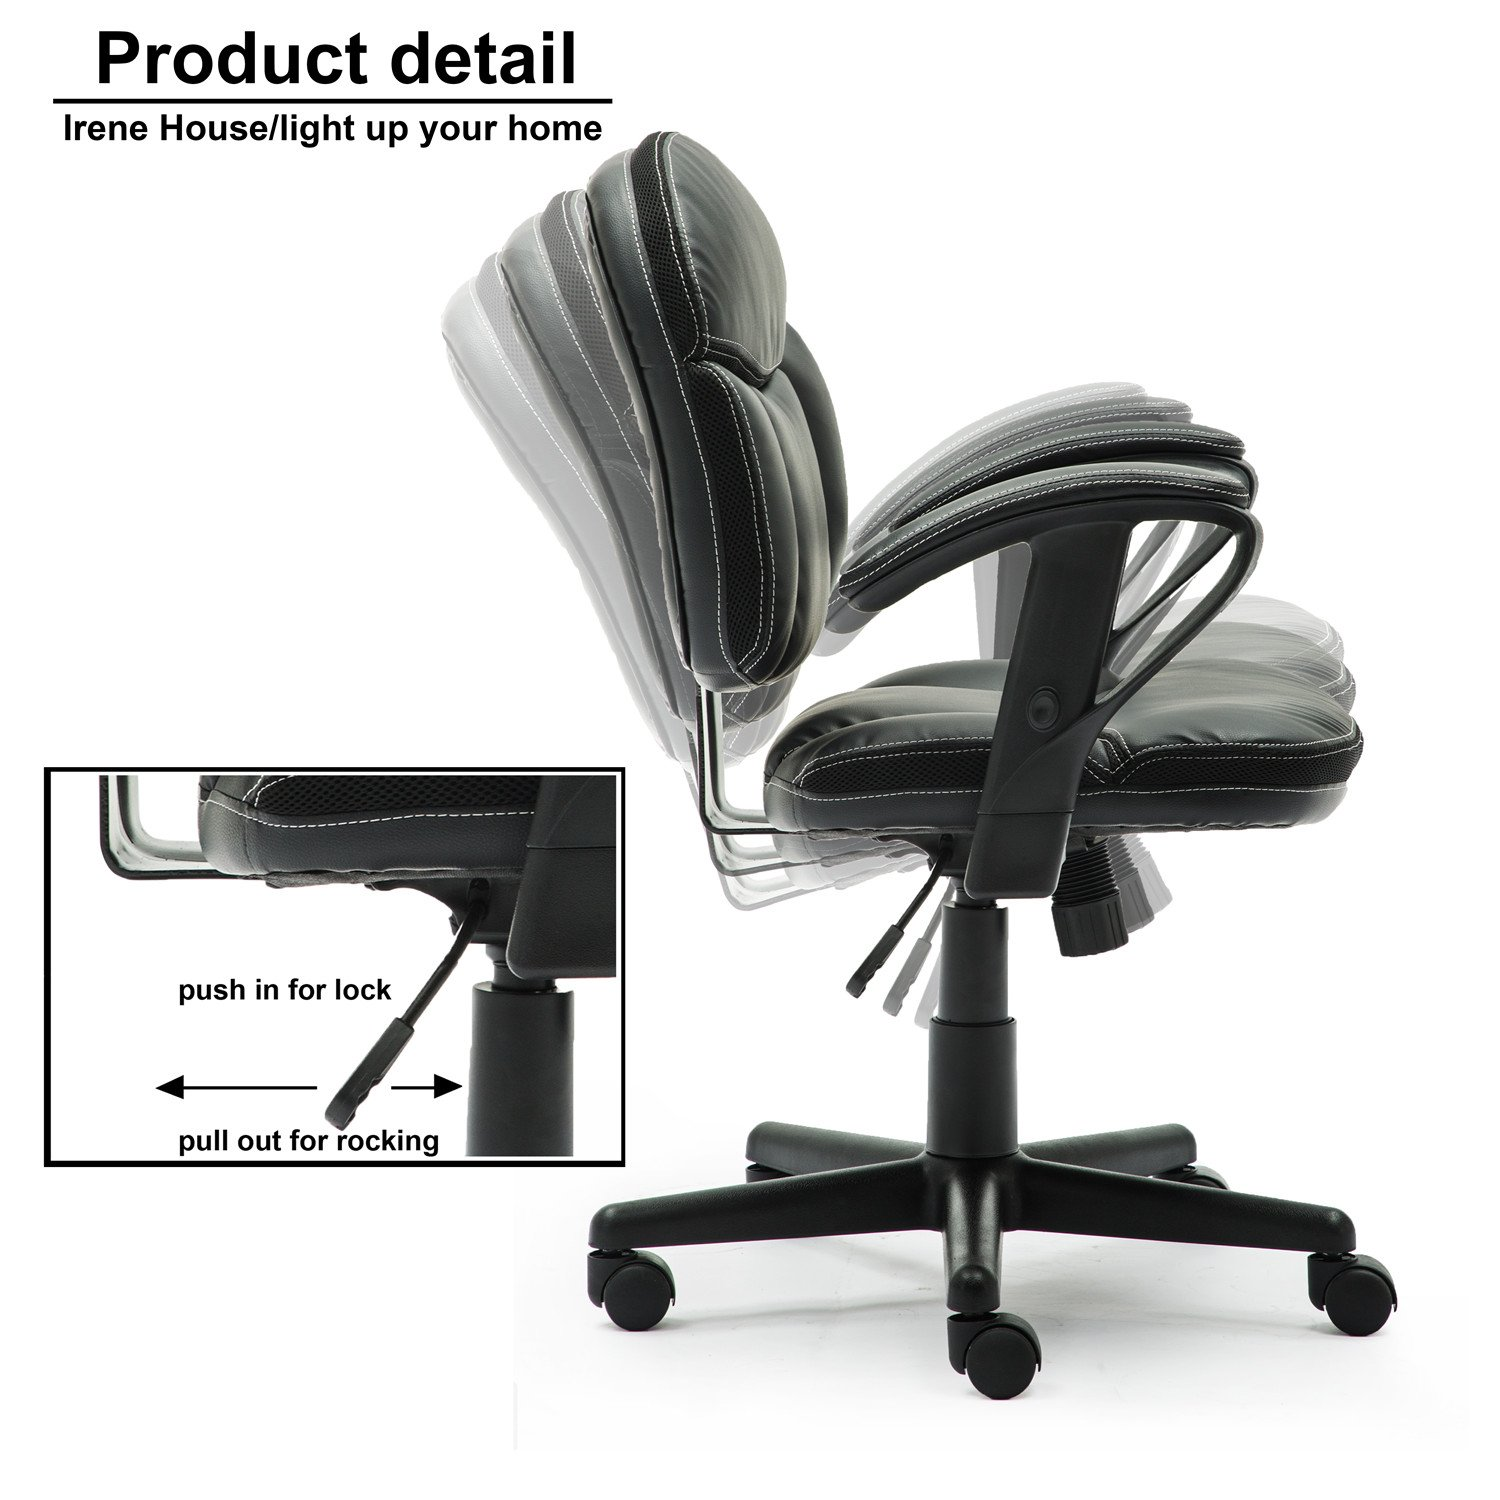 Irene House Comfortable Adult Teen's Swivel Adjustable PU Desk Chair,Ergonomic Mid-Back Student Computer Task Chair,Medium Adult's Home Office Chair(Black) by Irene House (Image #4)